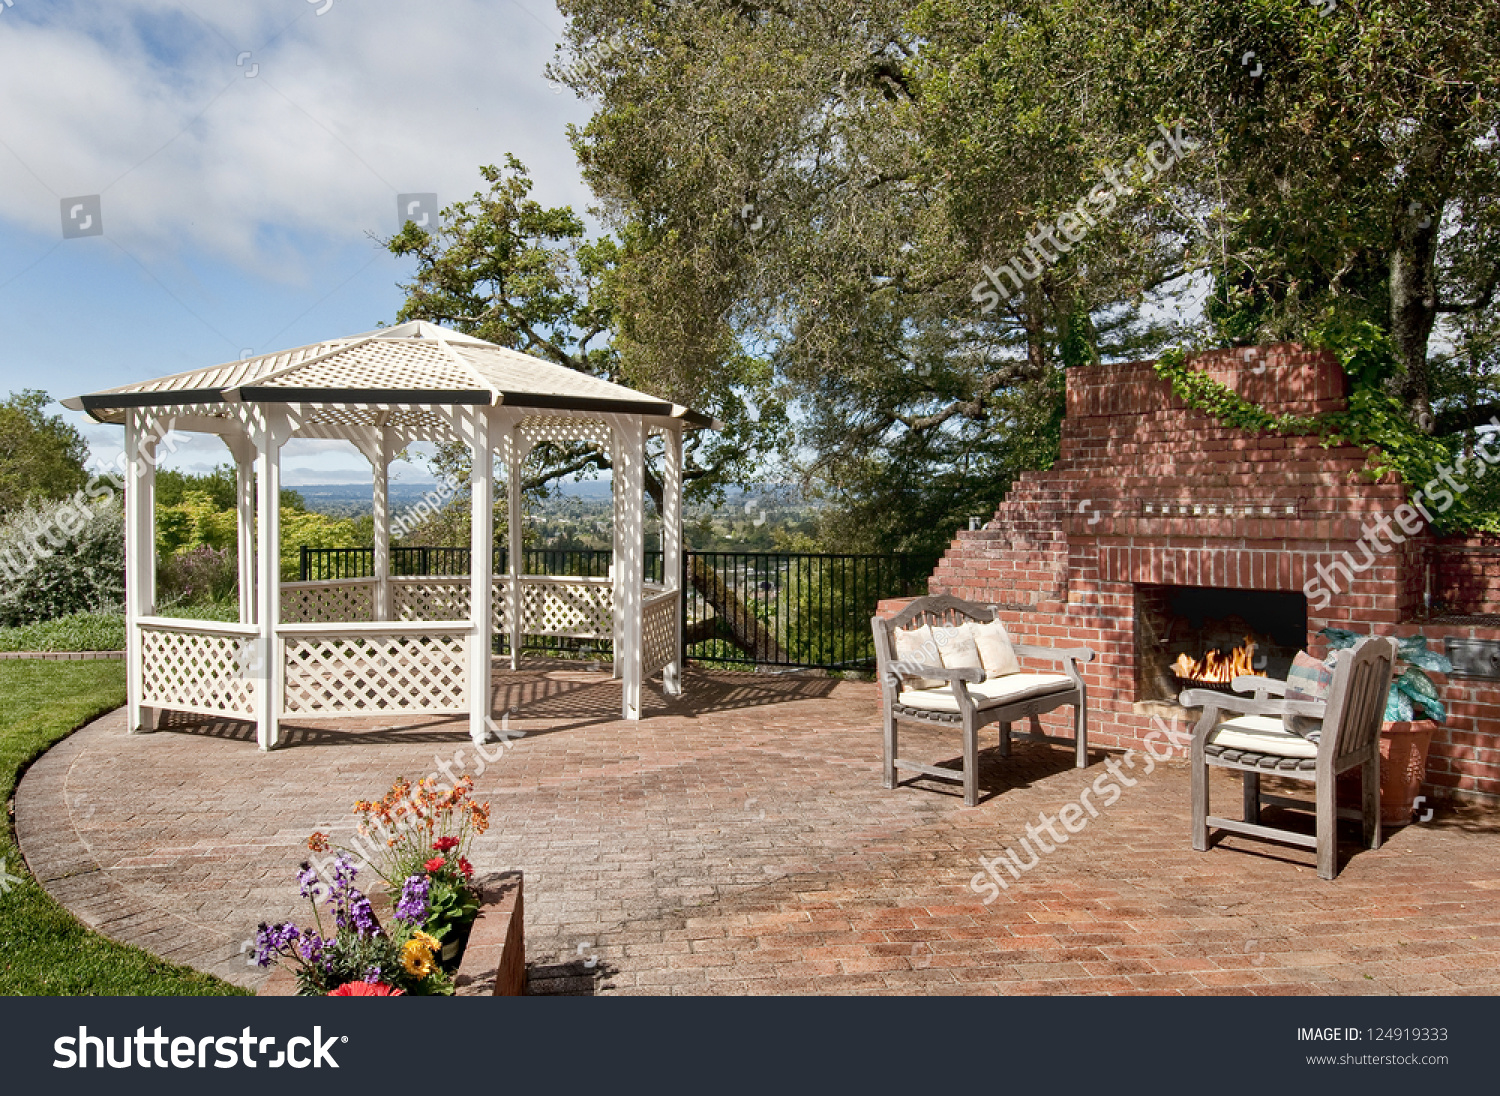 garden design with backyard patio stock photos images uamp pictures shutterstock with backyard landscape: garden furniture patio uamp